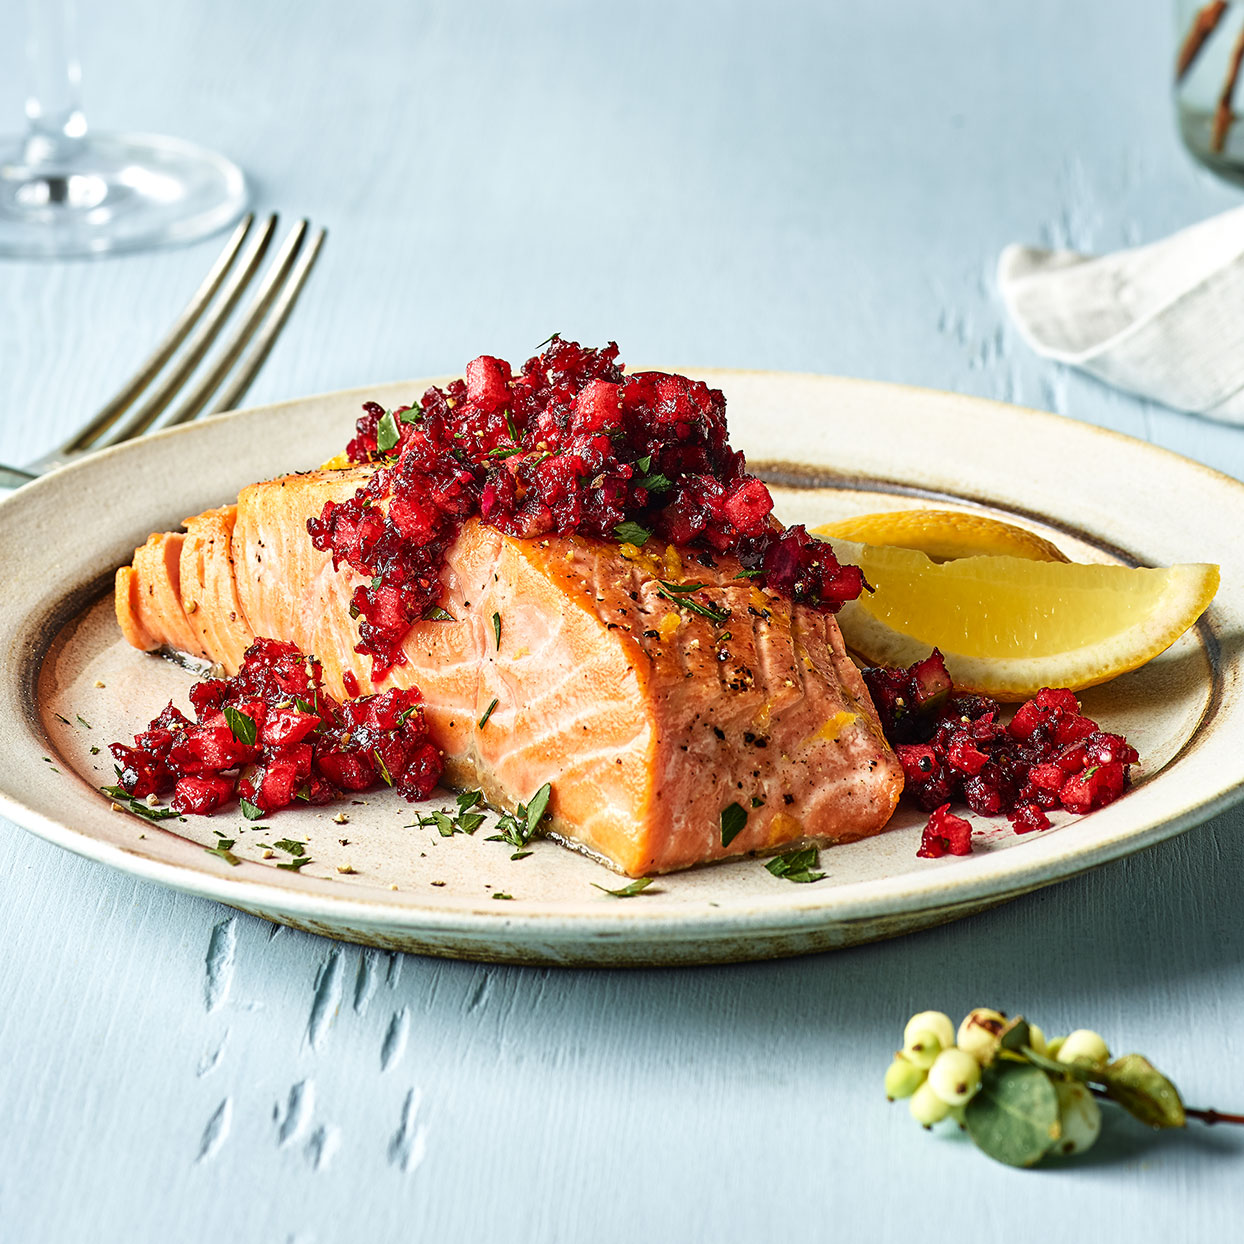 This ruby-red cranberry relish recipe gets refreshing crunch from apple and celery. It's also delightful alongside a roast chicken or pork loin. Source: EatingWell Magazine, December 2019